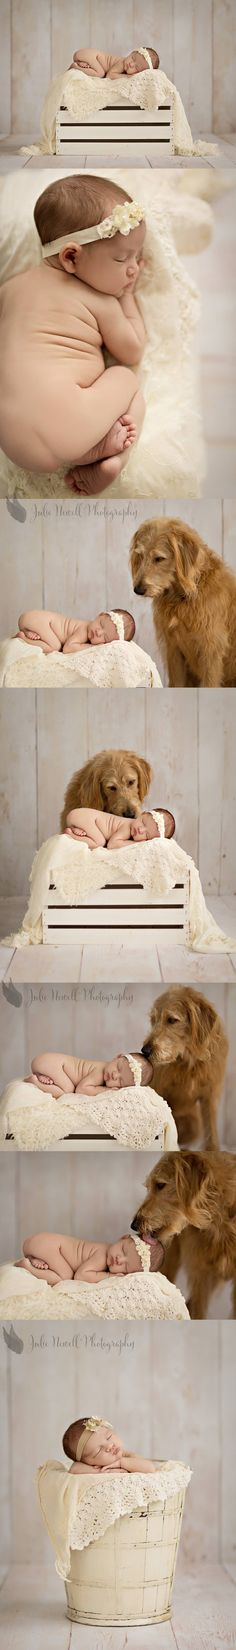 newborn photography - Tap the pin for the most adorable pawtastic fur baby apparel! You'll love the dog clothes and cat clothes! <3